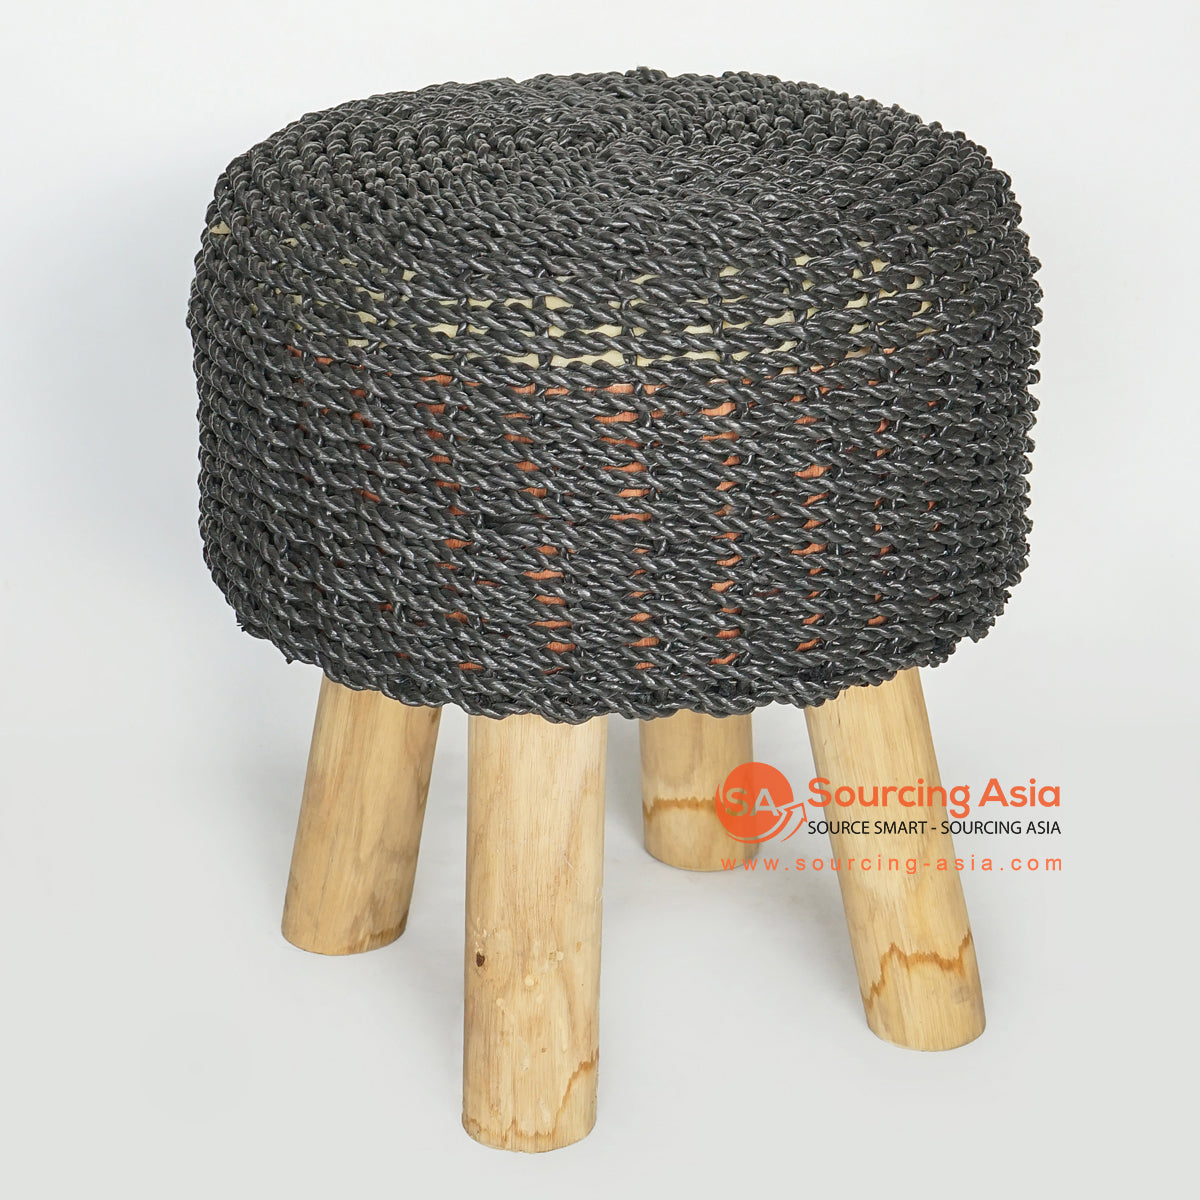 MRC158 NATURAL WOODEN ROUND STOOL WITH BLACK SEAGRASS SEAT